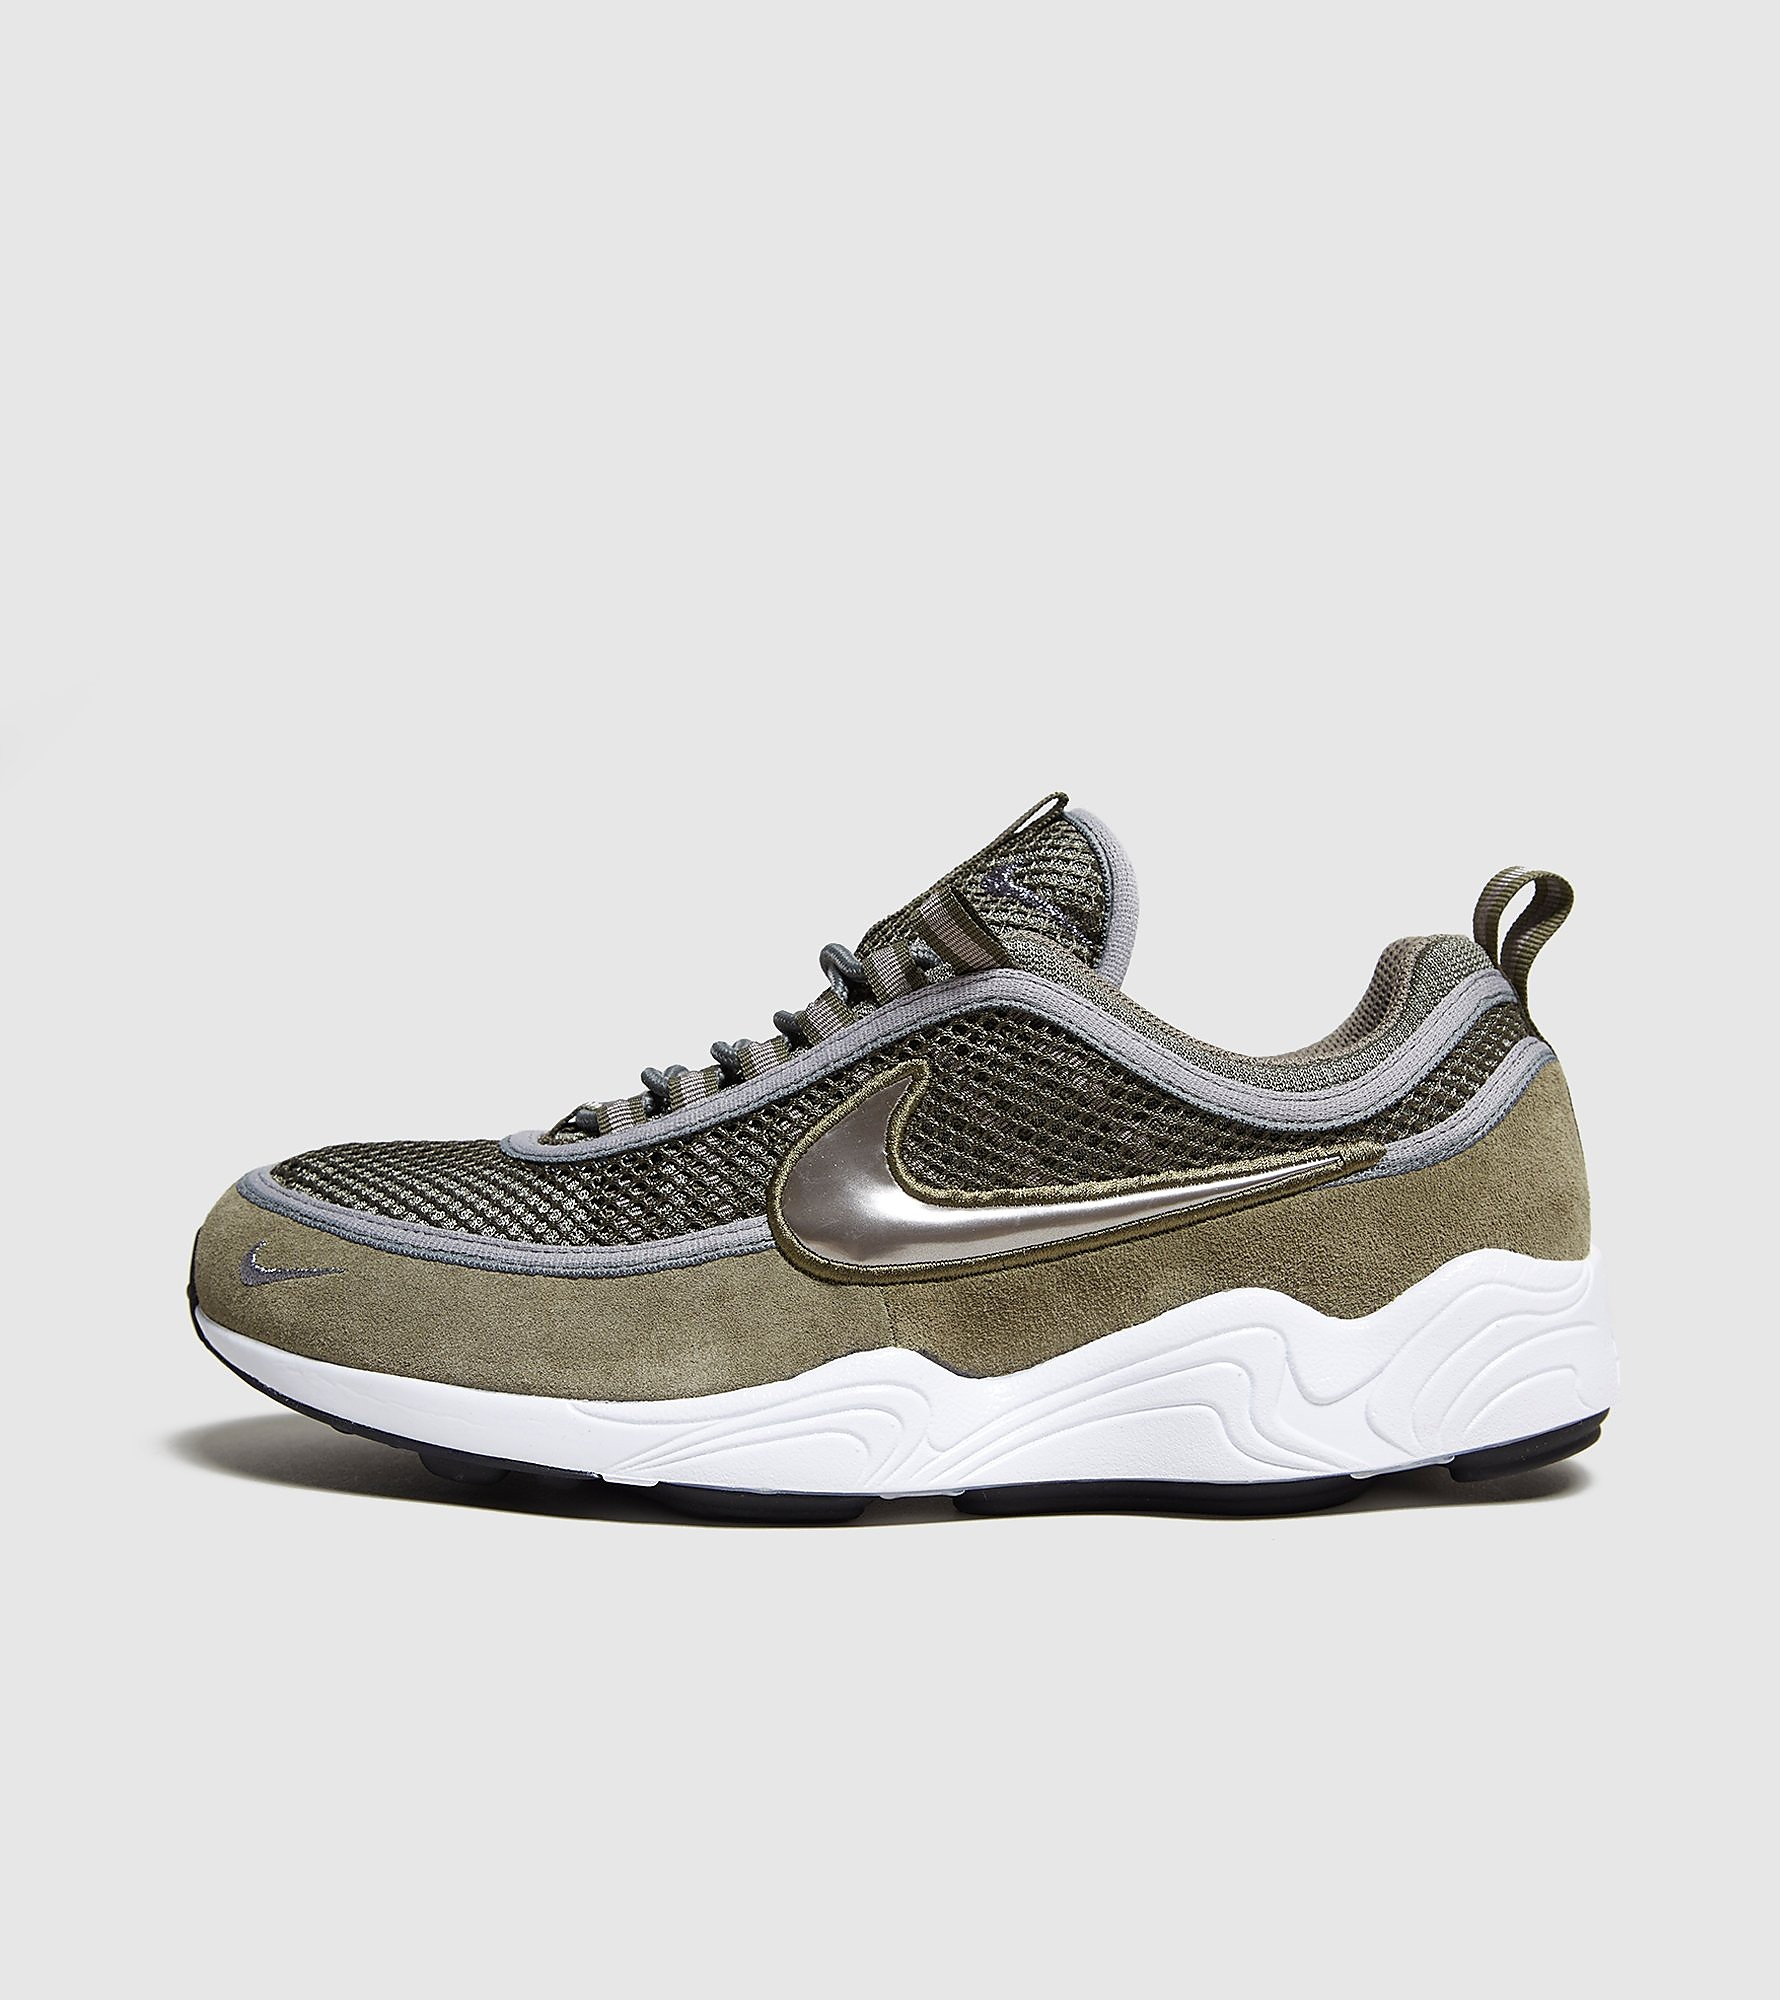 Nike Air Zoom Spiridon - size? Exclusive